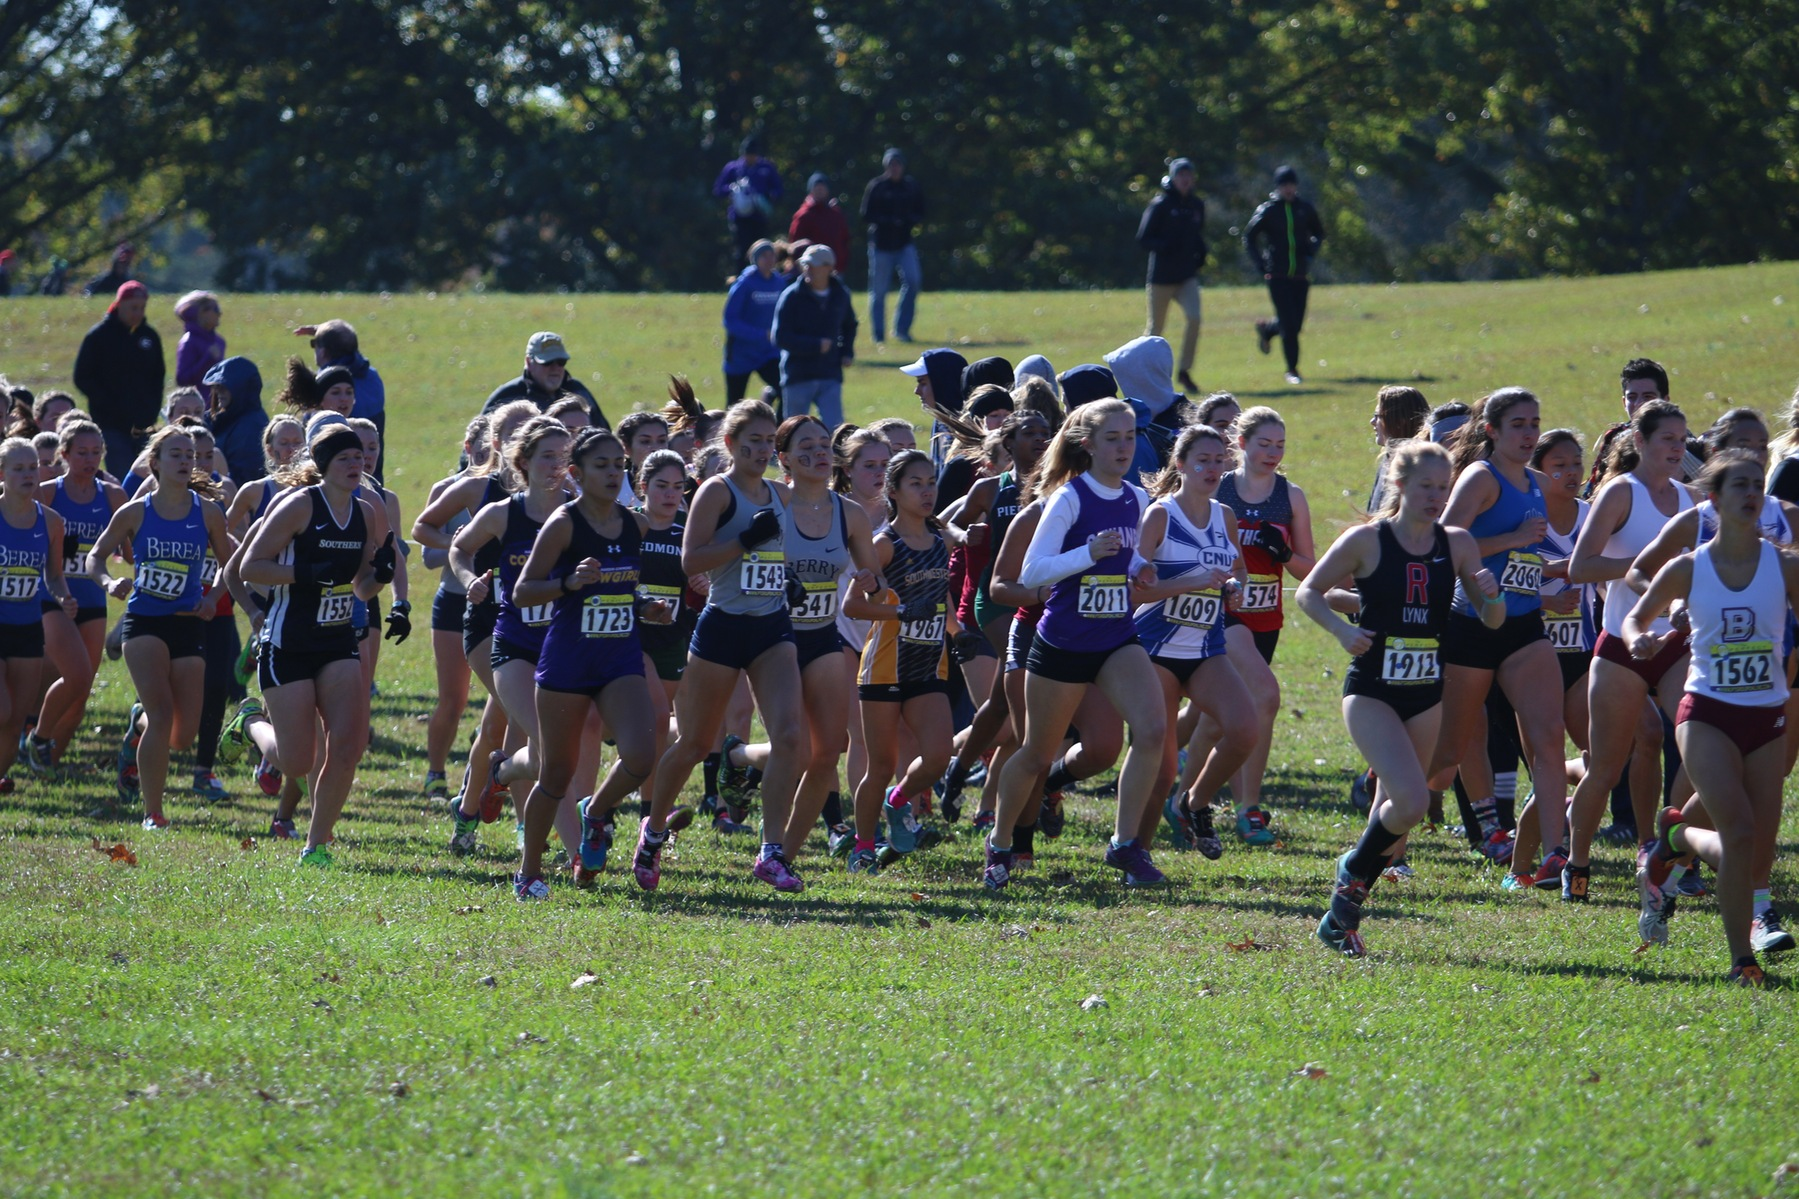 Women's Cross Country Competes In NCAA Regional Championship